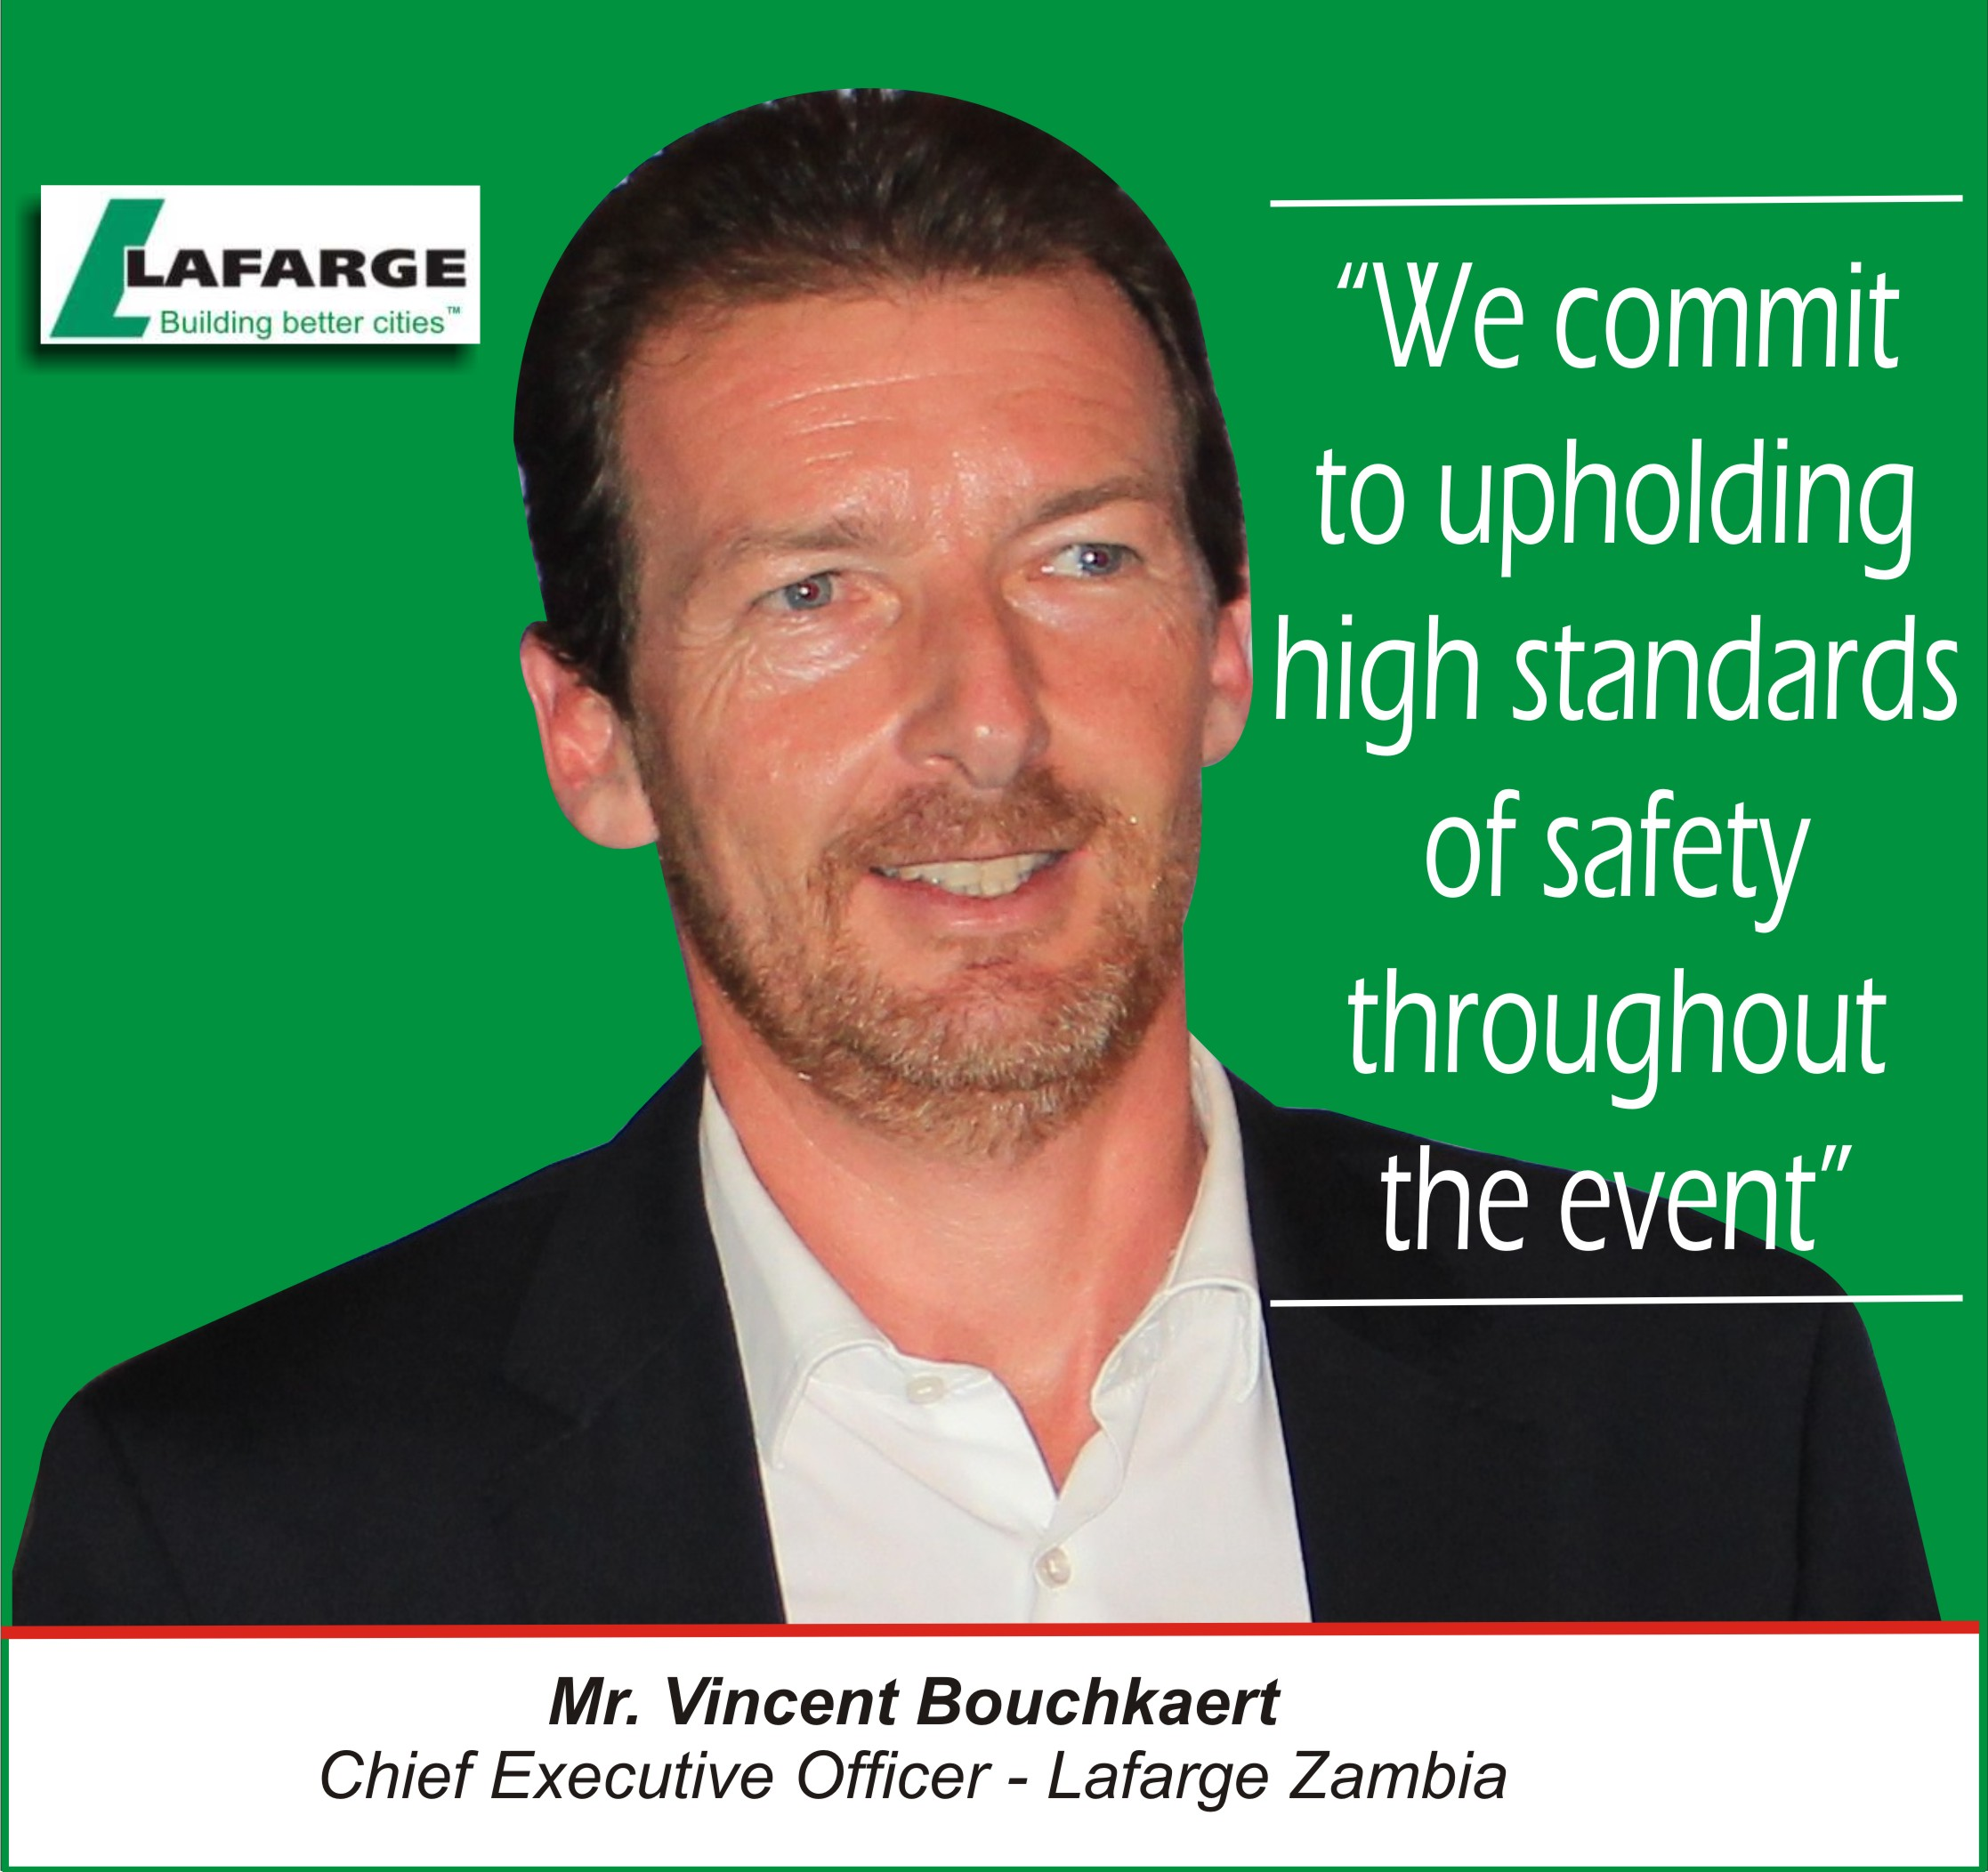 Lafarge Zambia, Chief Executive Officer, Mr. Vincent Bouckaert